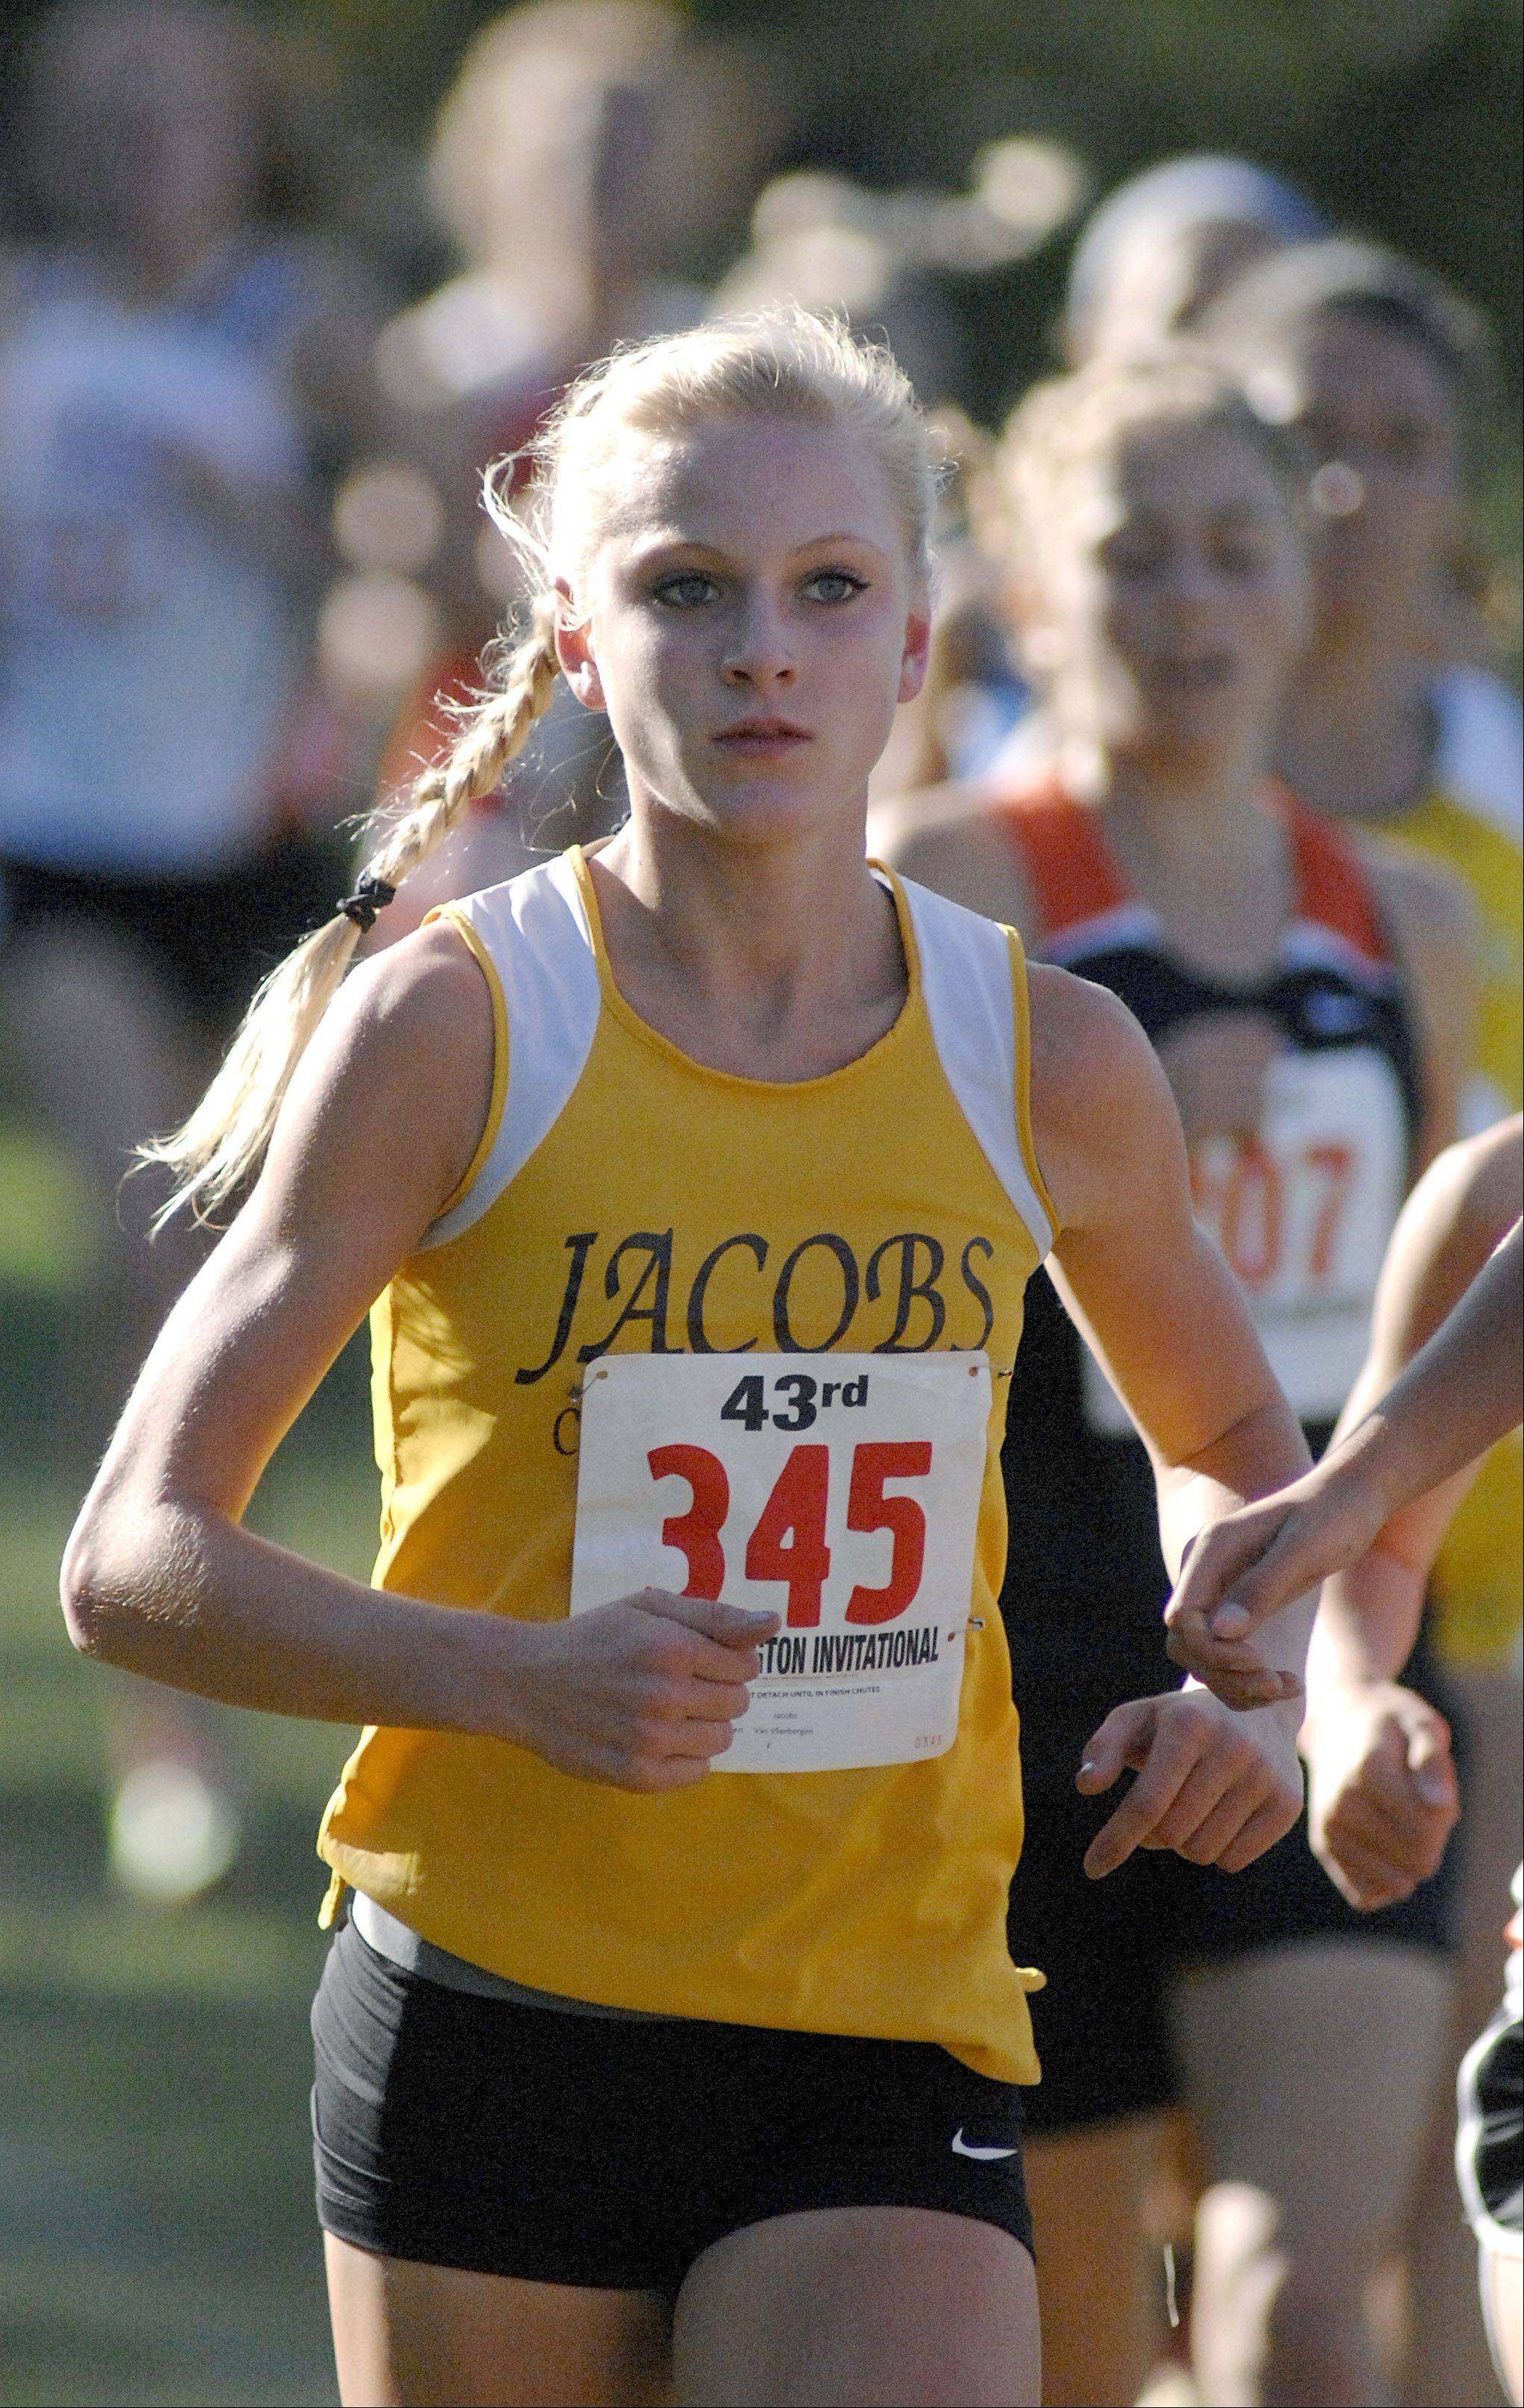 Jacobs' Lauren Van Vlierbergen takes fourth place overall in the girls varsity race at the Kaneland Eddington Invitational in Elburn on Saturday, September 15.